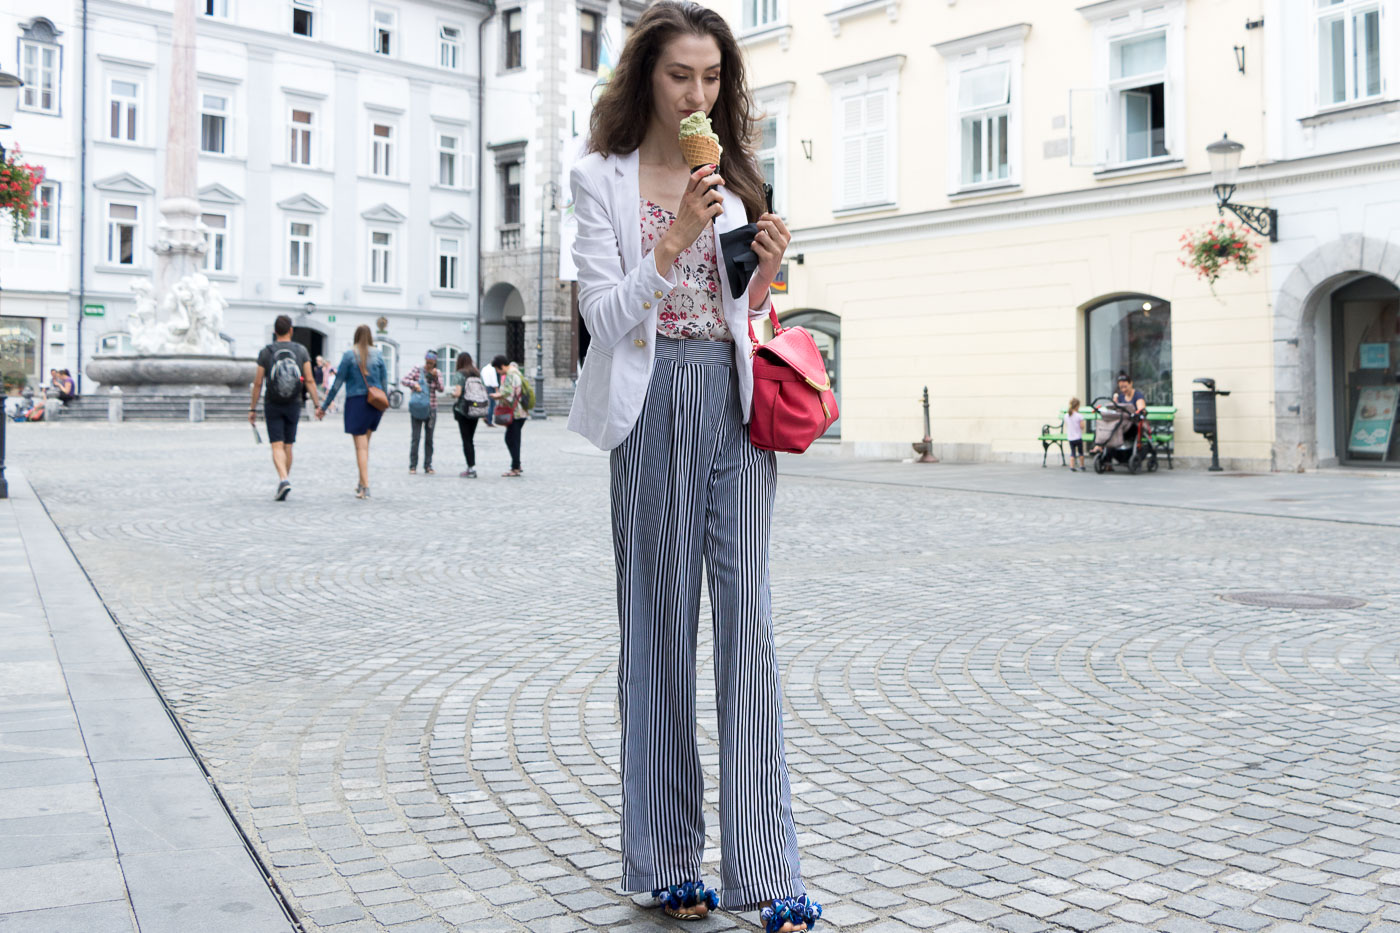 Fashion Blogger Veronika Lipar of Brunette from Wall Street eating pistachio ice cream on the street dressed in wide-leg striped Michael Kors pants, white blazer, floral slip top from Stella McCartney and blue Aquazzura sandals